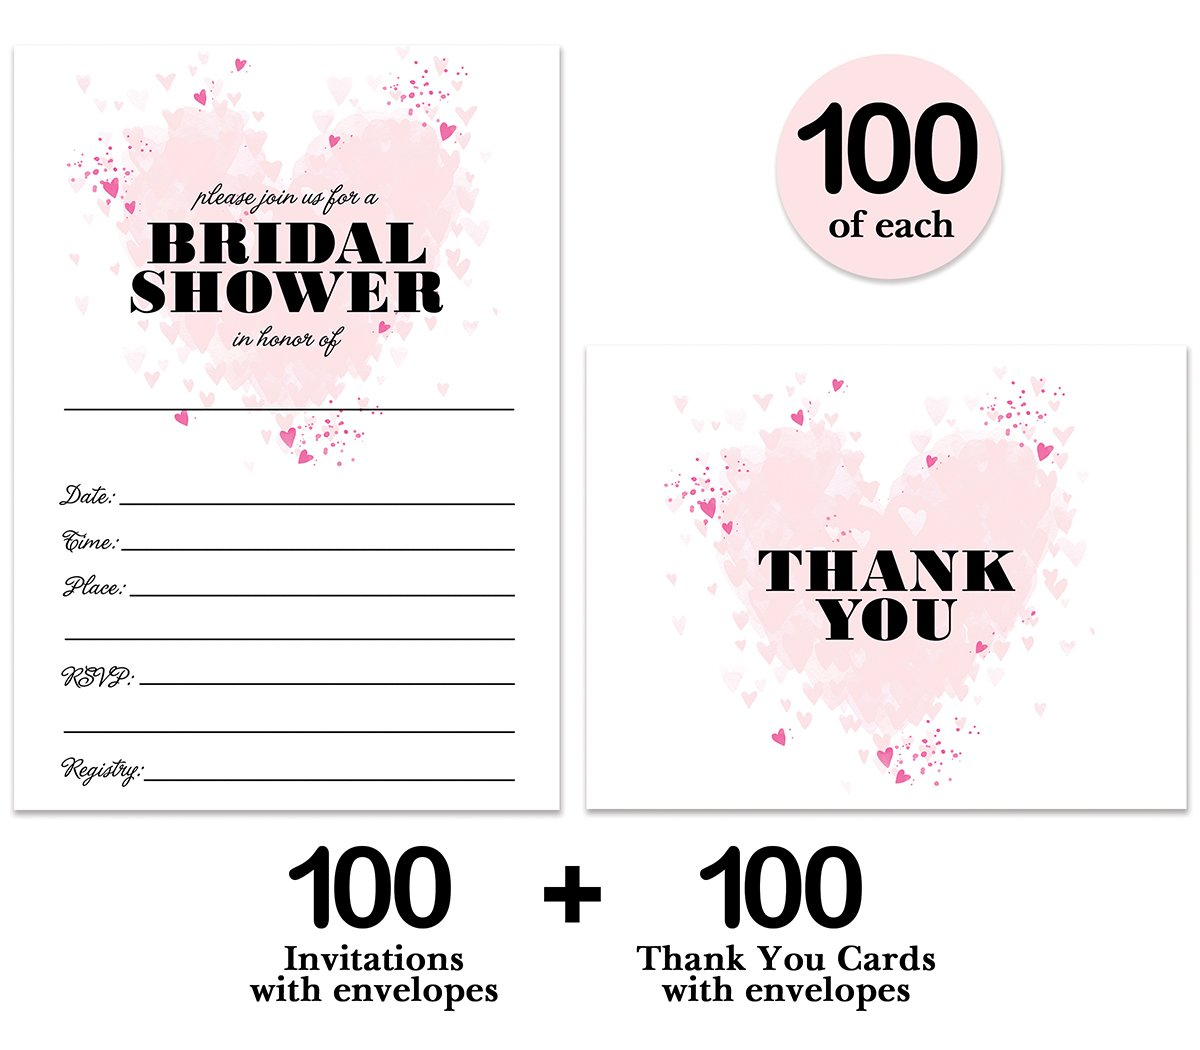 Bridal Shower Invitations & Thank You Cards with Envelopes Matched Set ( 100 of Each ) Beautiful Pink Hearts Write-in Invites & Bride's Wedding Party Gift Folded Thank You Notes Best Value Combo Pair by Digibuddha (Image #2)